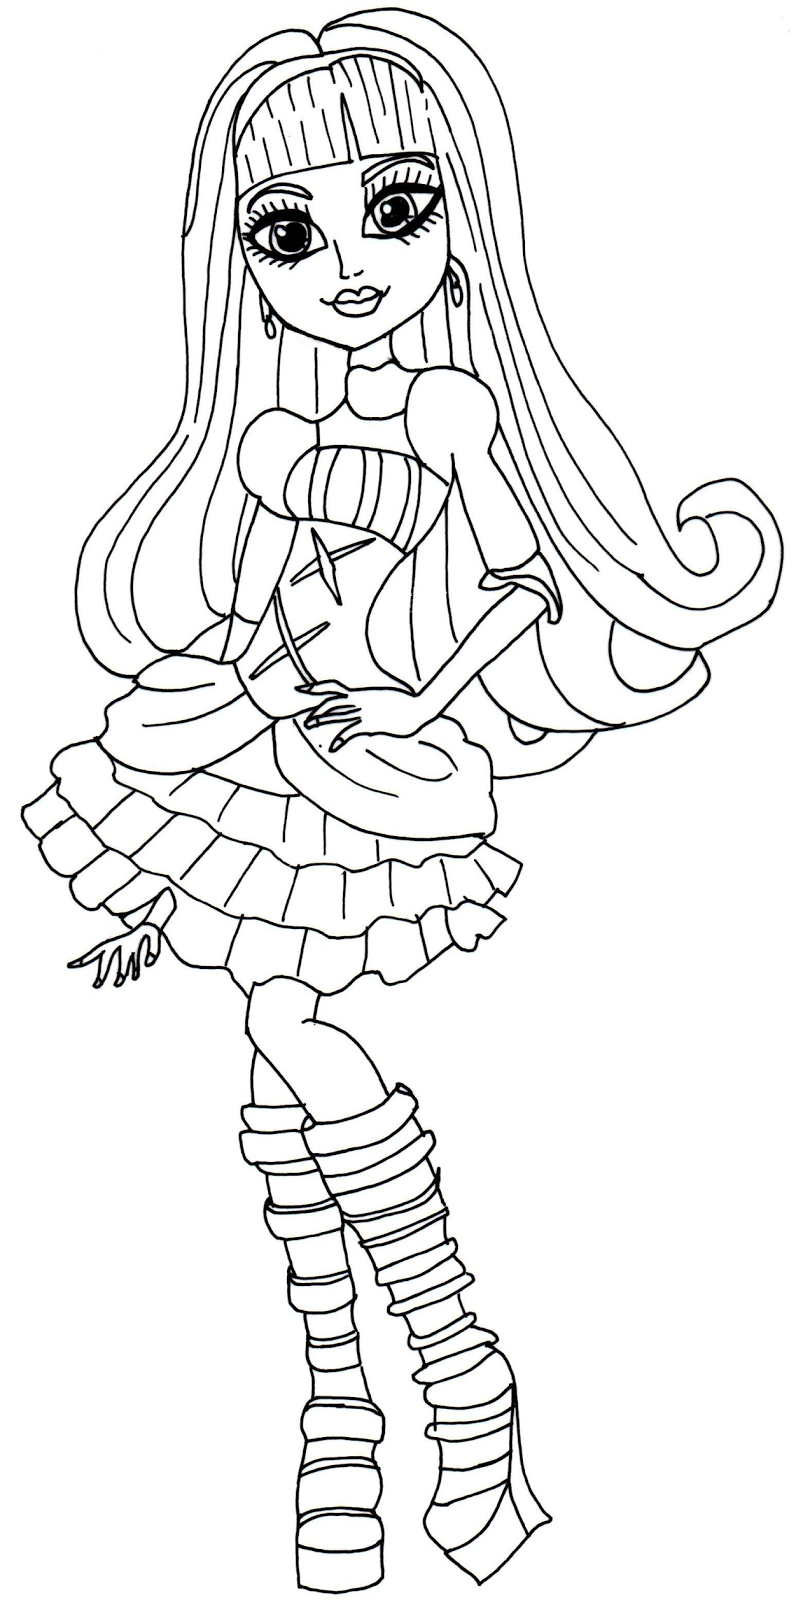 Free Printable Monster High Coloring Pages: Elissabat Free ...